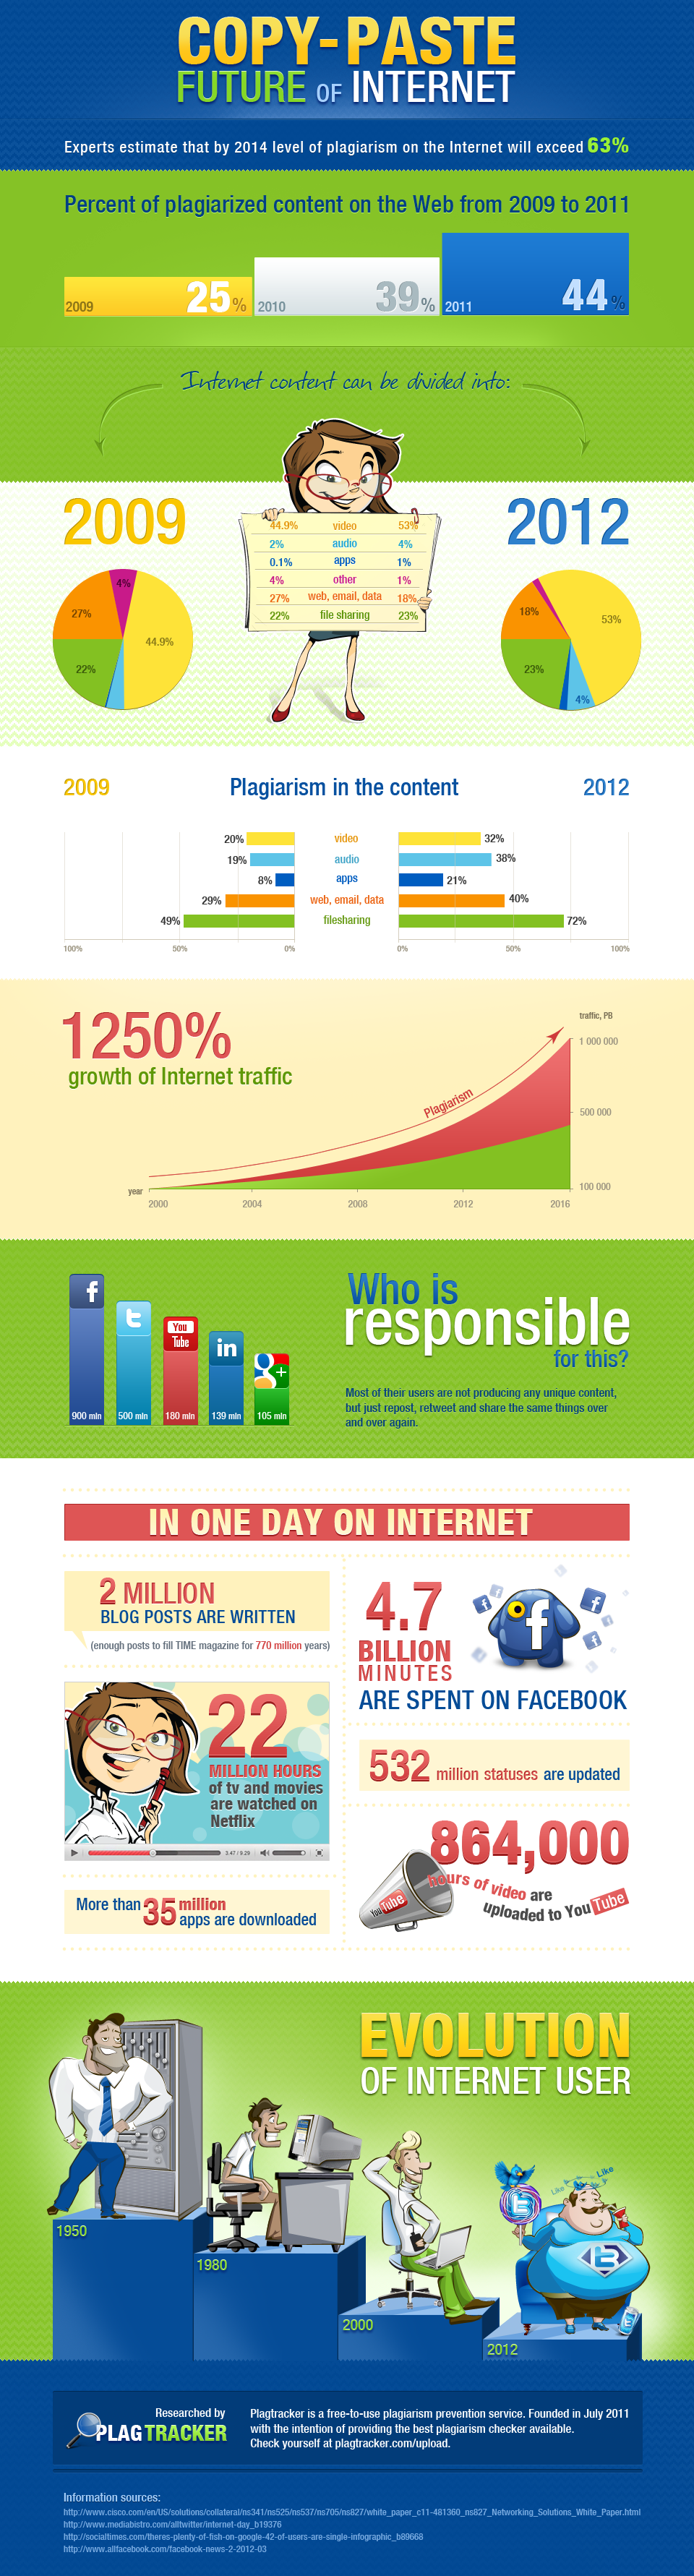 Plagtracker Infographic Is Social Media Creating a Plagiarism Problem (+ Infographic)